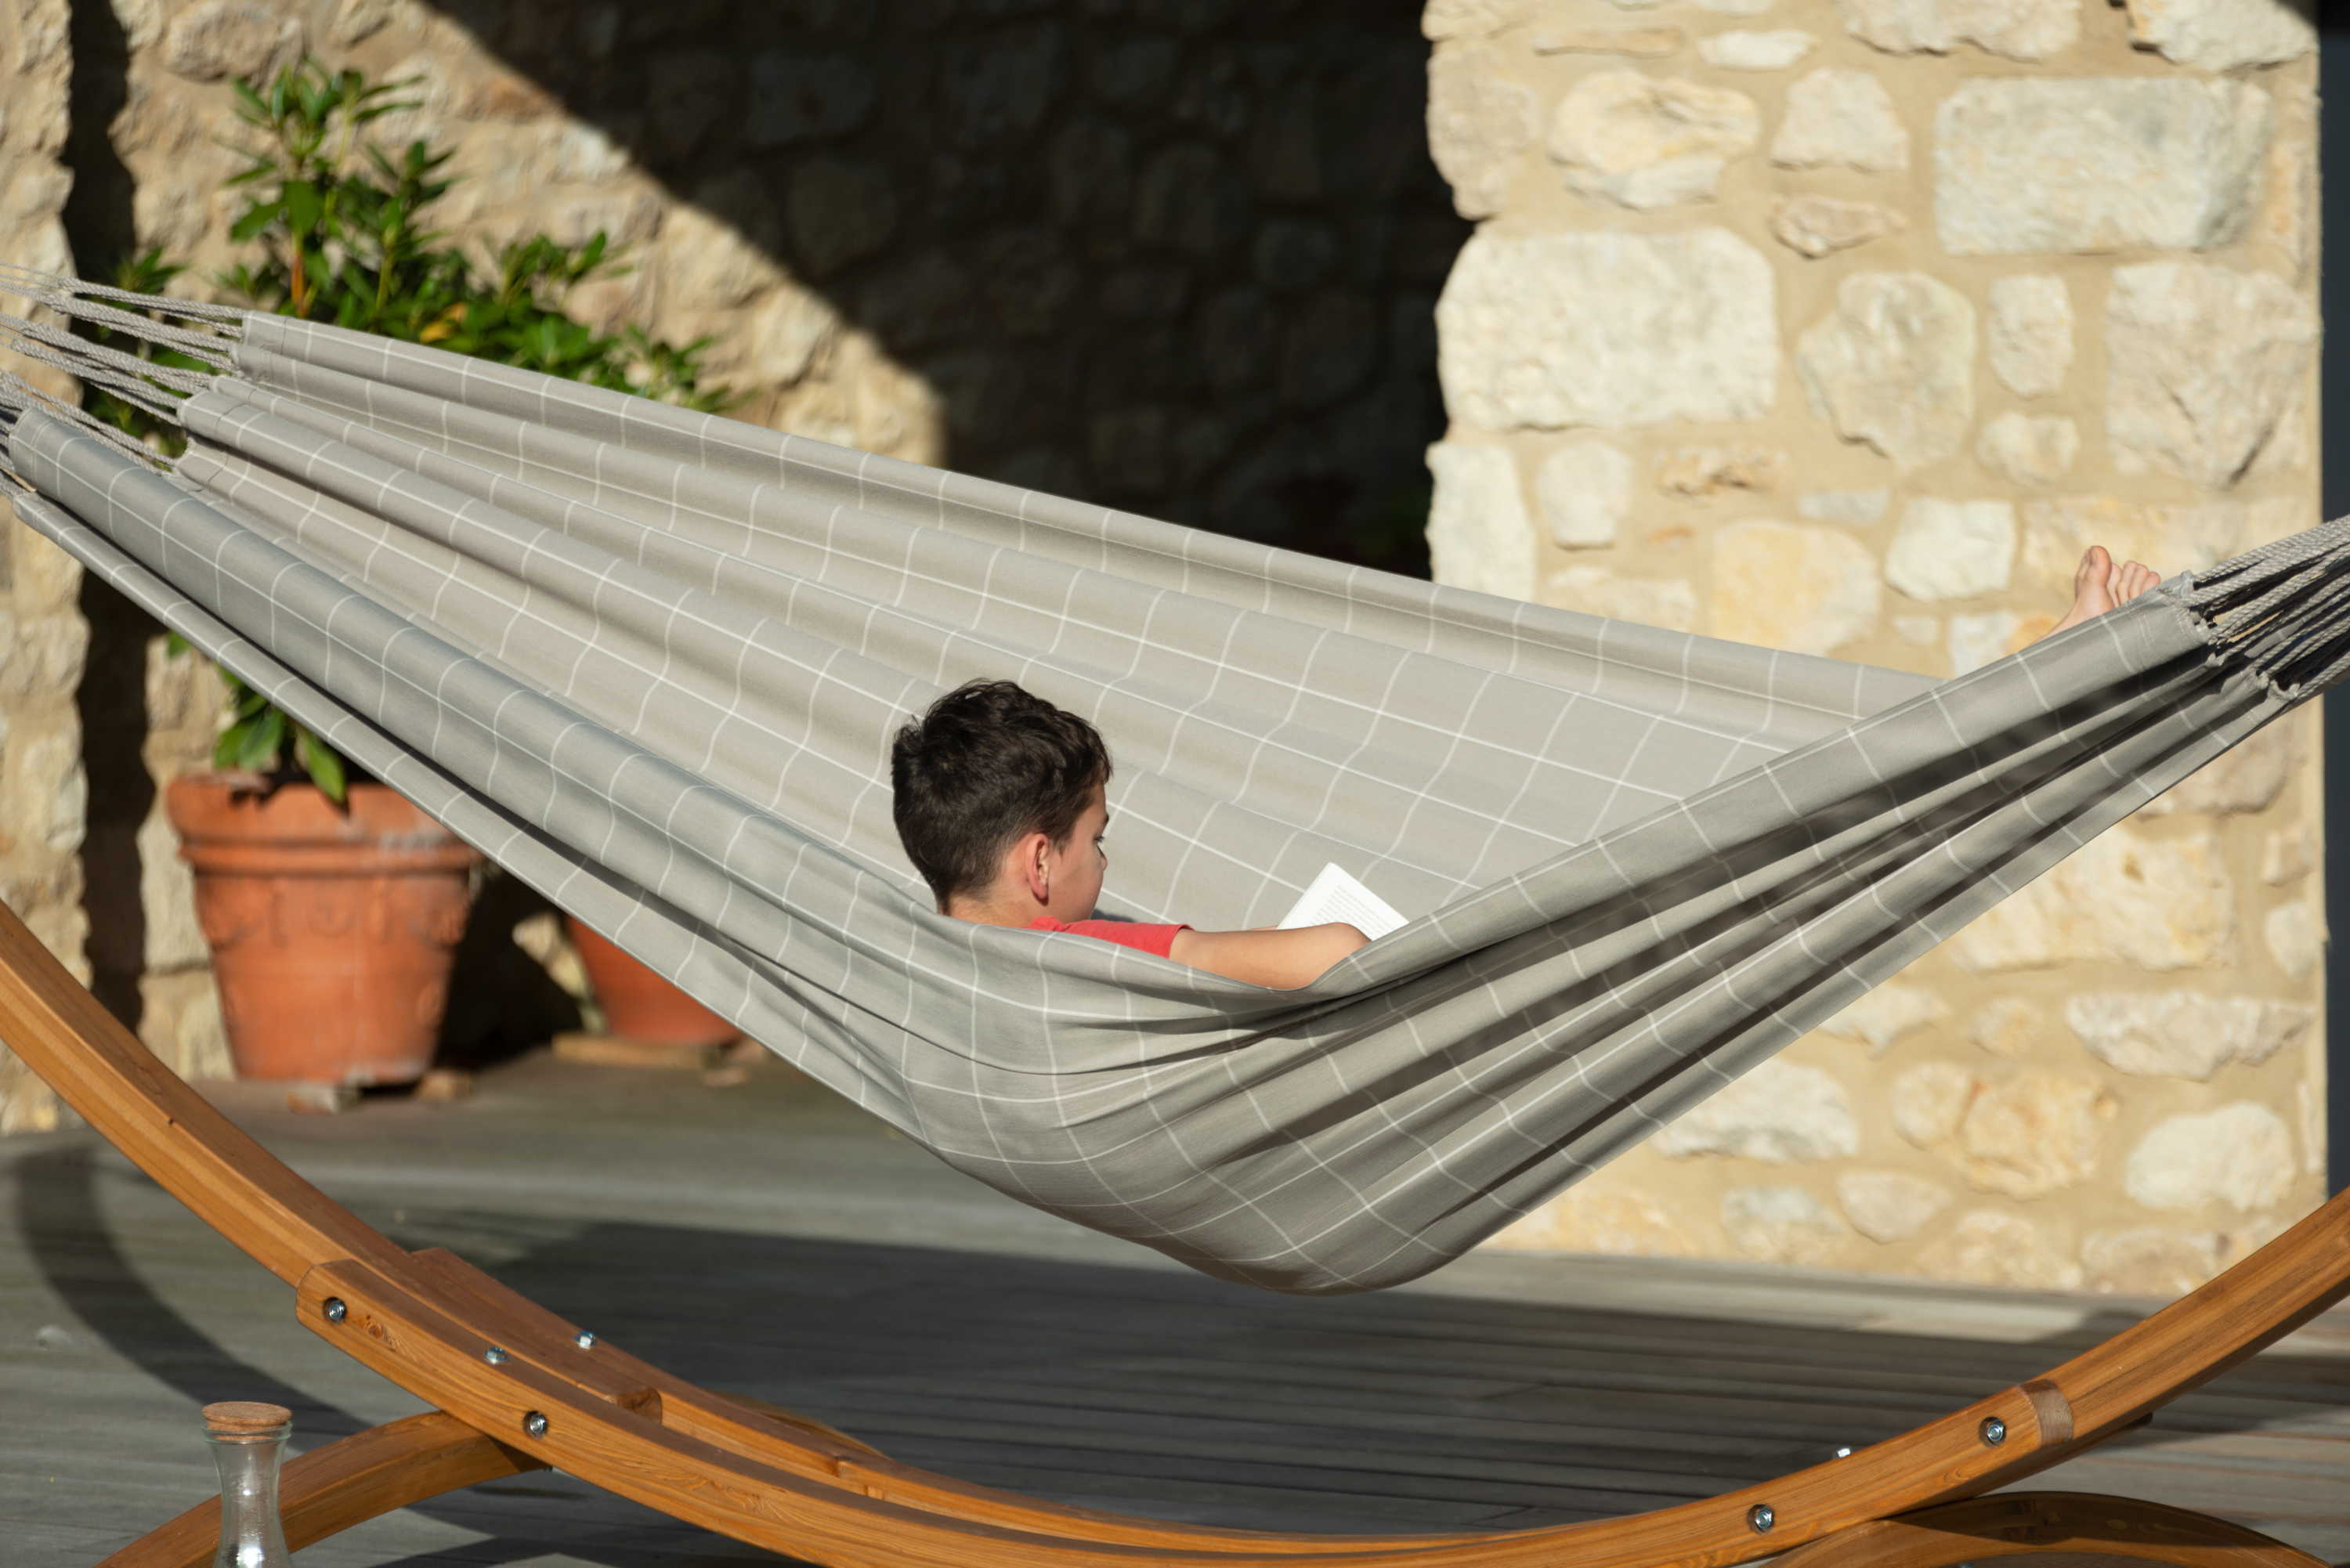 Relaxing poolside on the patio deck in the Brisa Almond Weather-Resistant Hammock